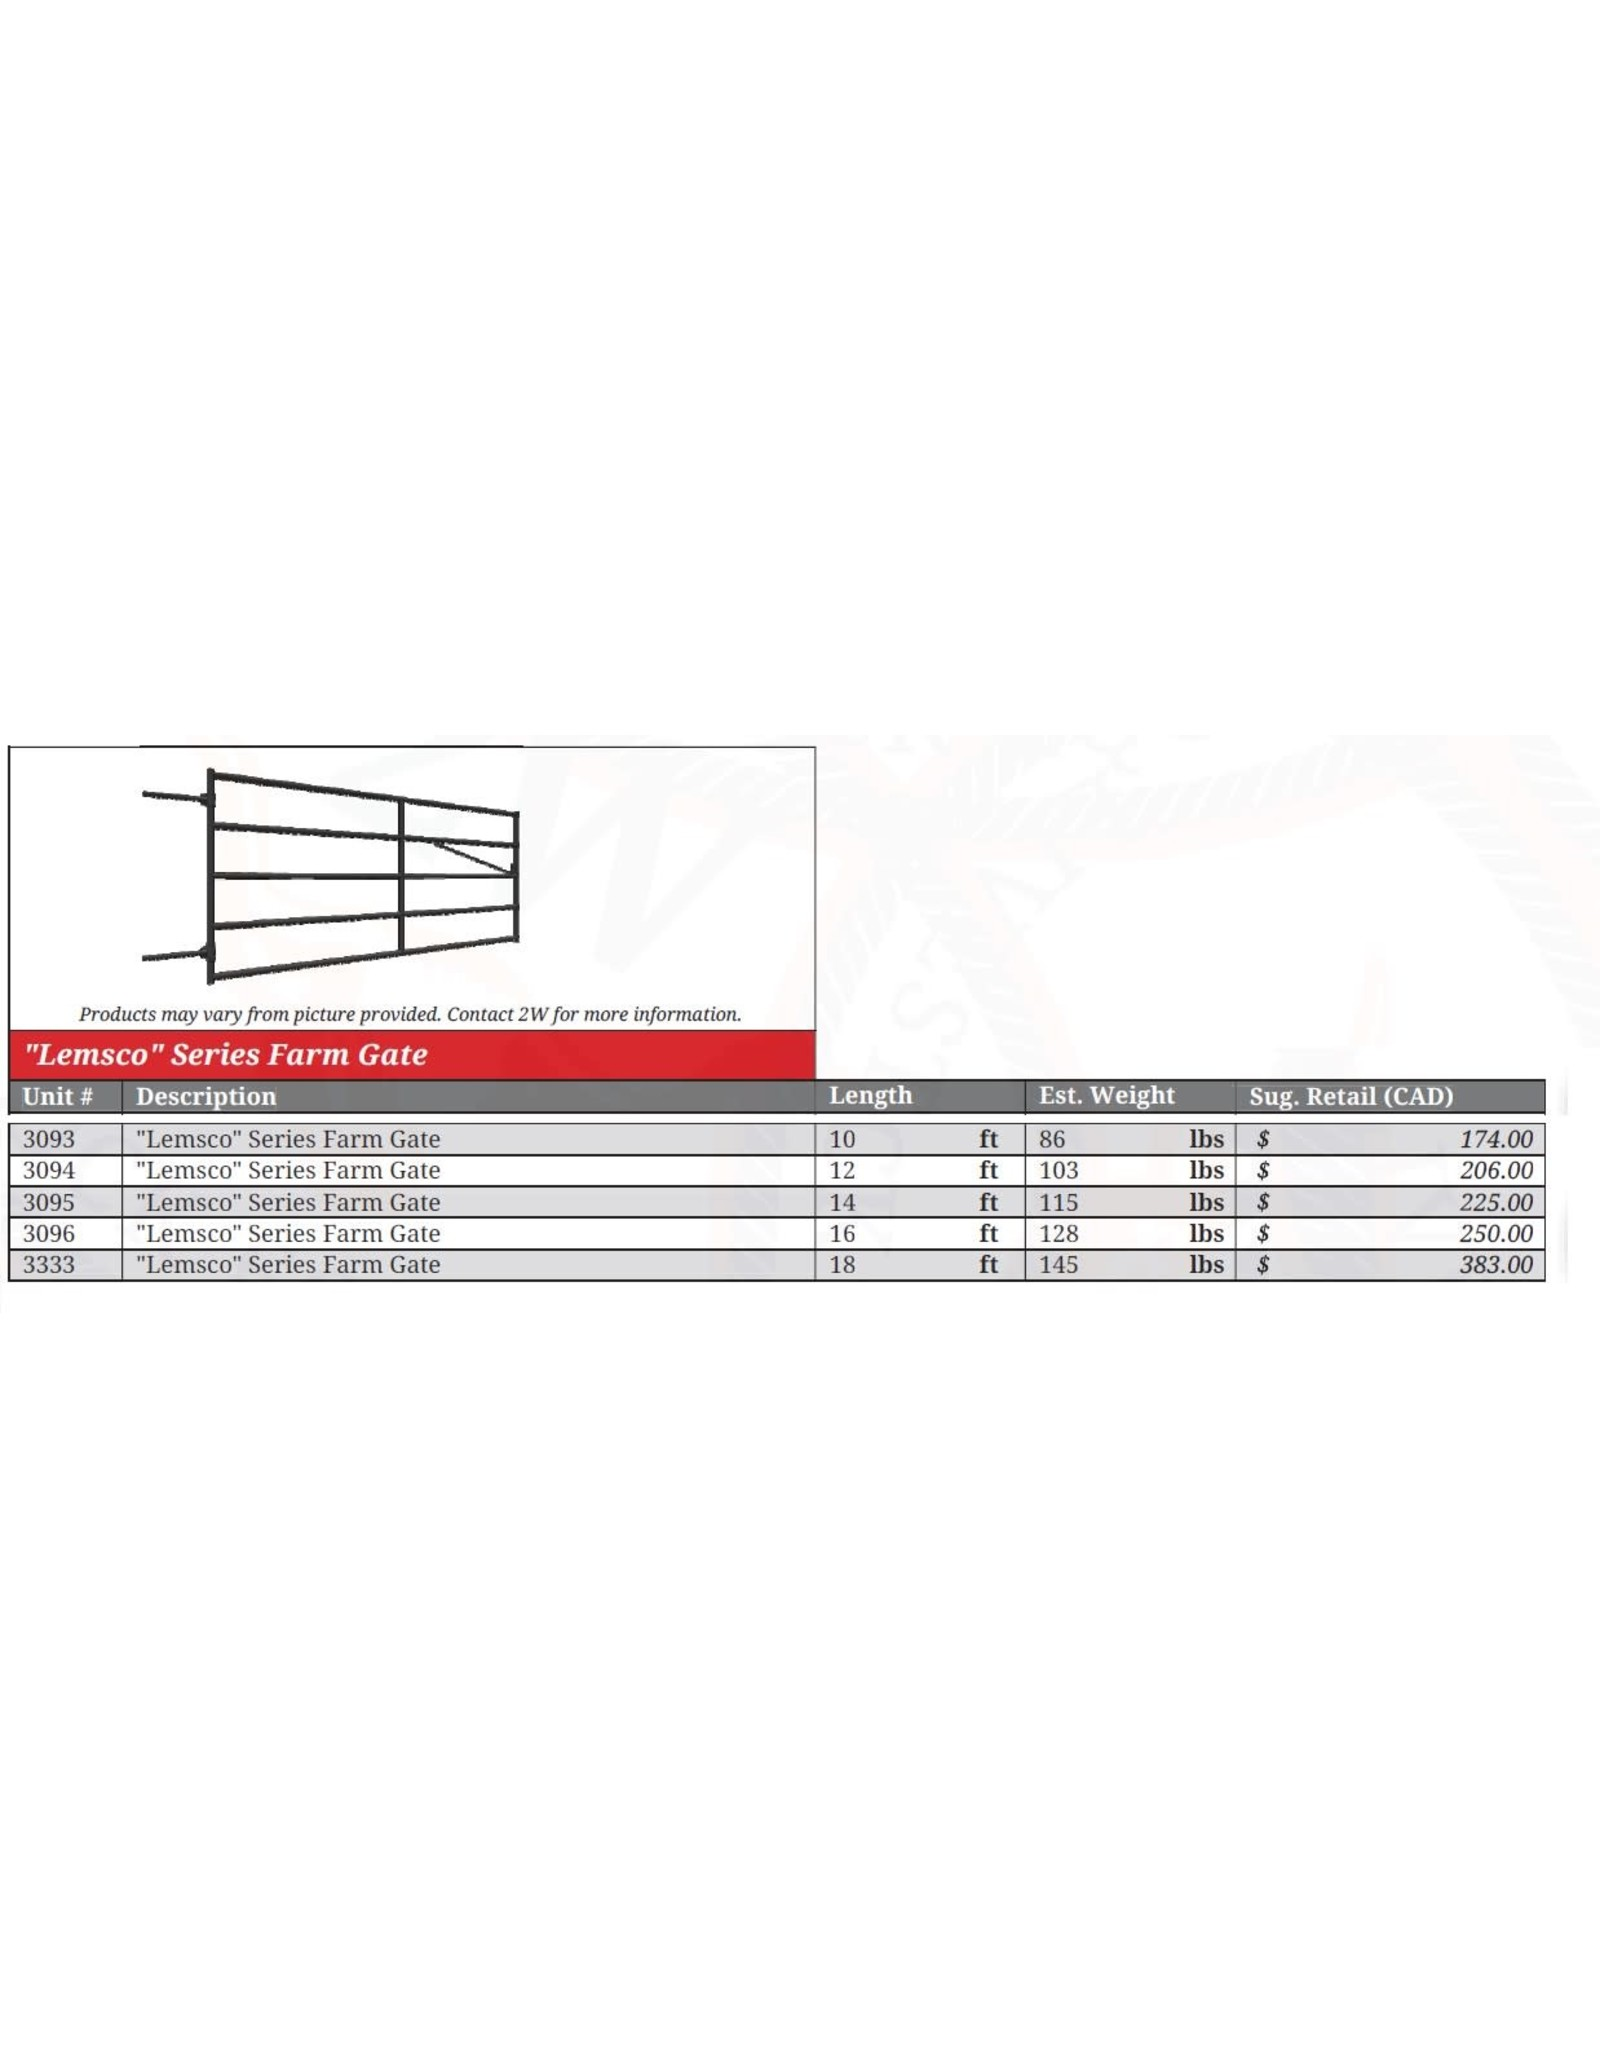 SALE  6' - Farm Gate Bolt Hinge (light grey) *** WILL NOT REORDER *** SALE IF BUY ALL ***- 3091